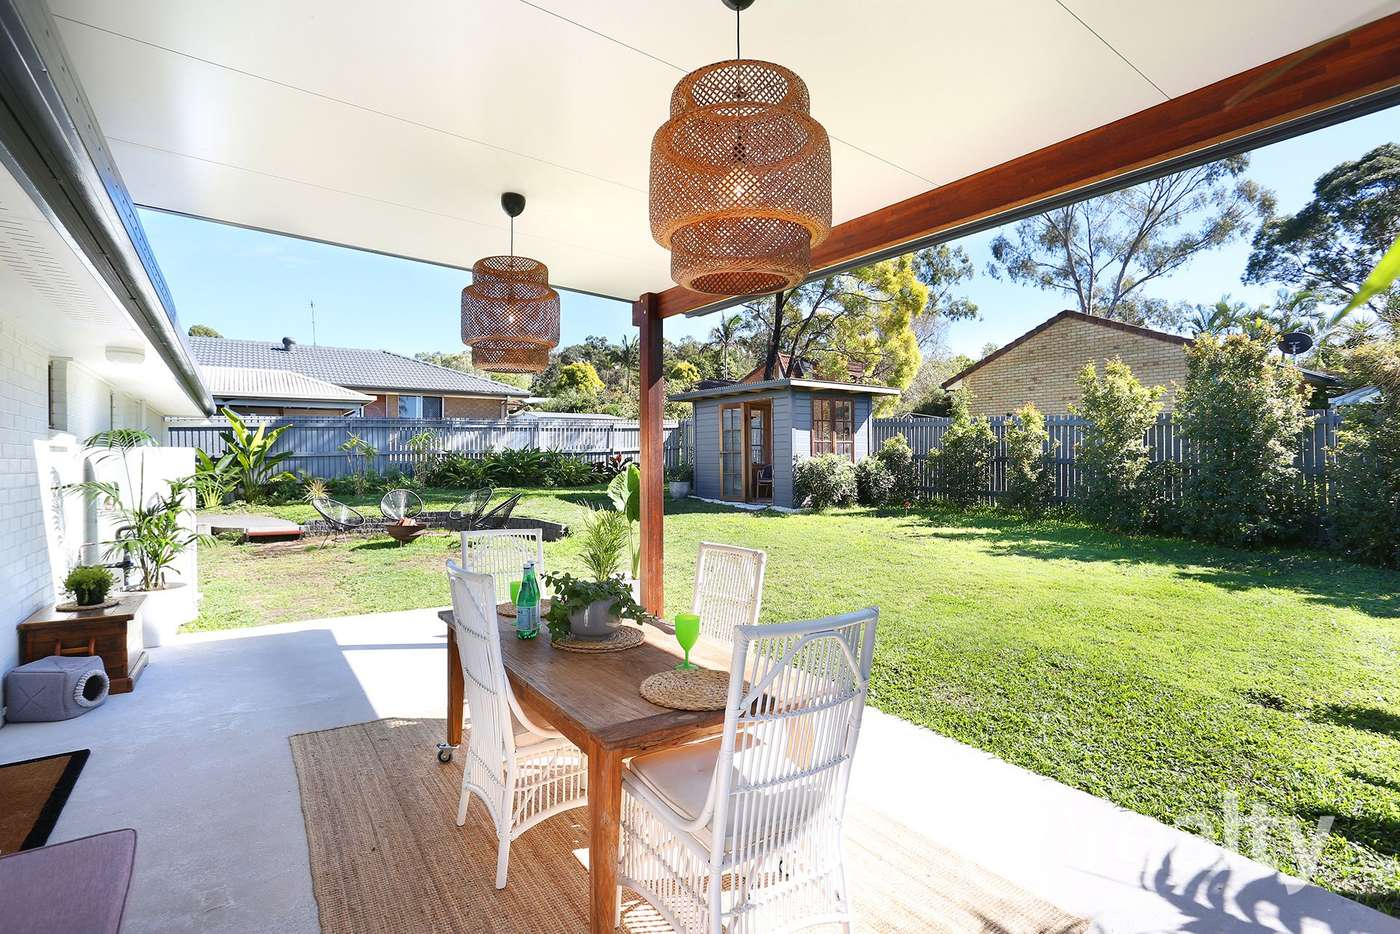 Main view of Homely house listing, 9 Miskin Street, Nerang QLD 4211